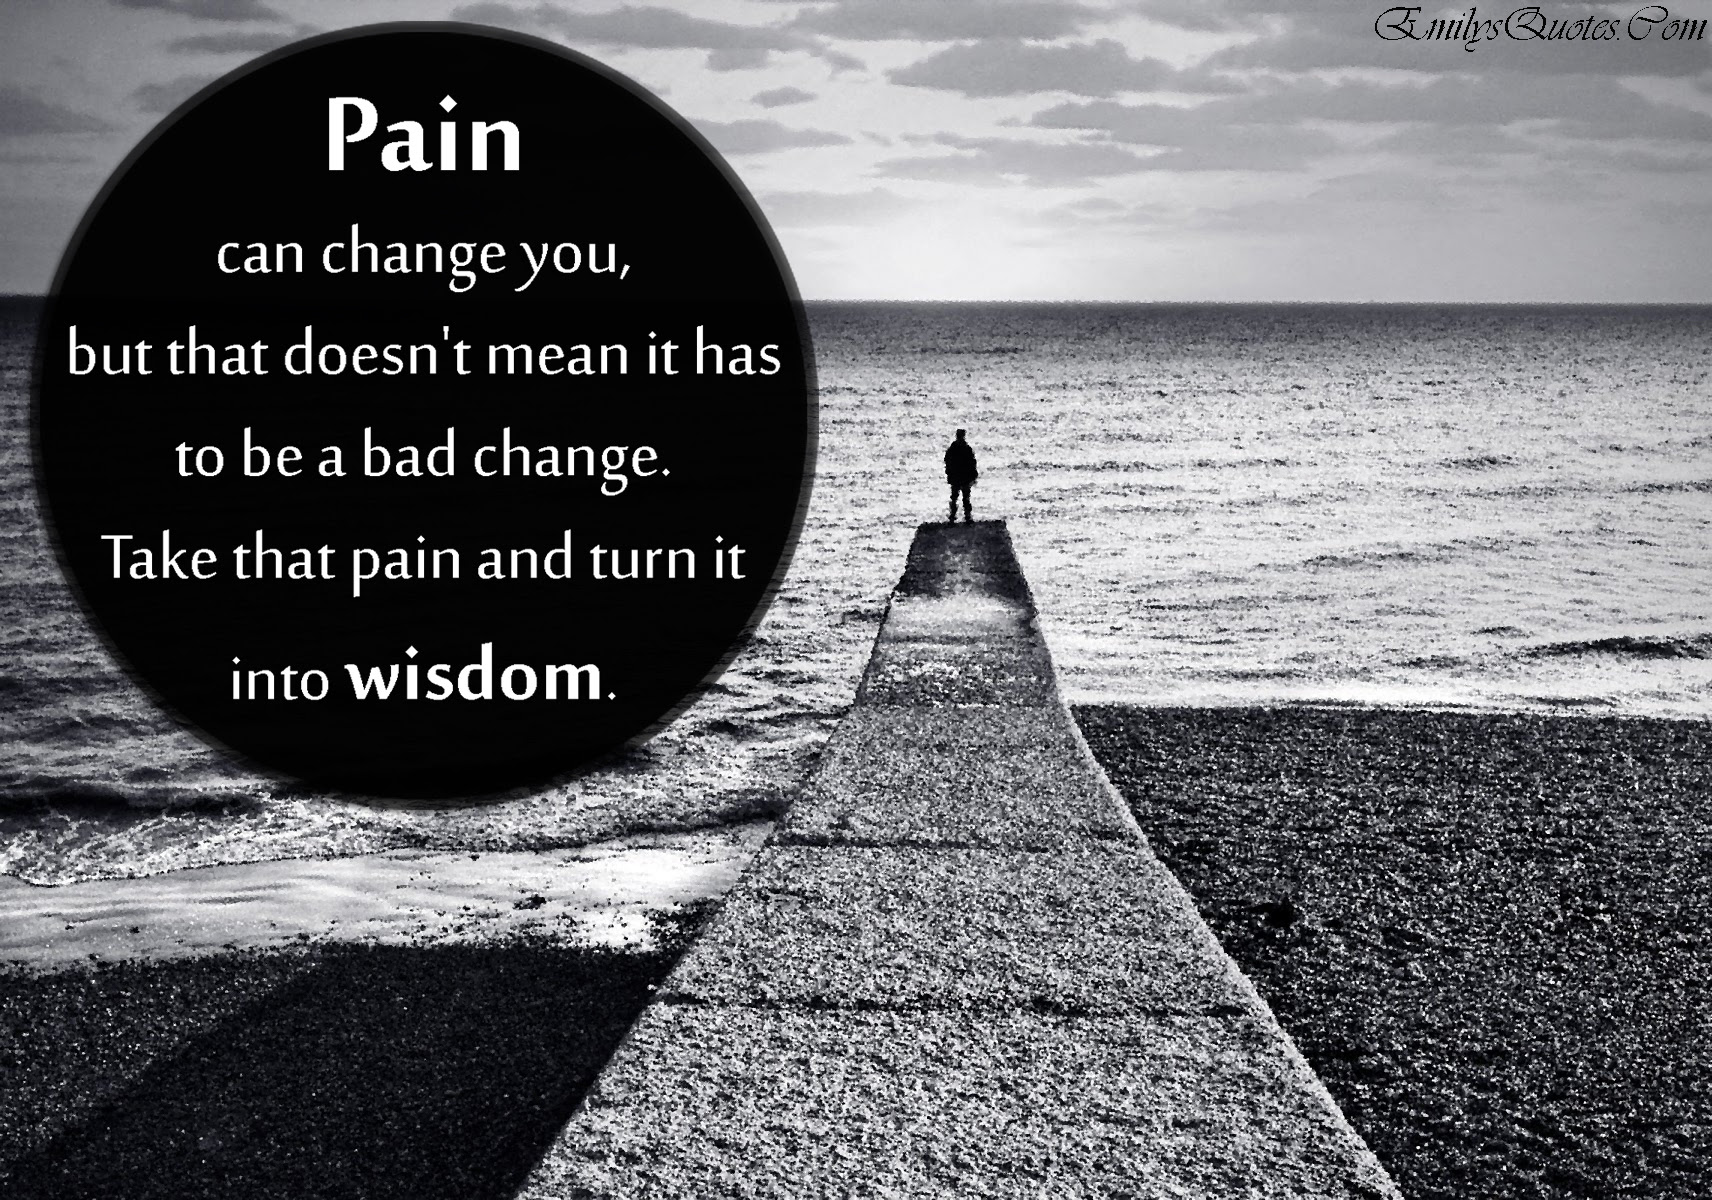 Pain Can Change You But That Doesnt Mean It Has To Be A Bad Change